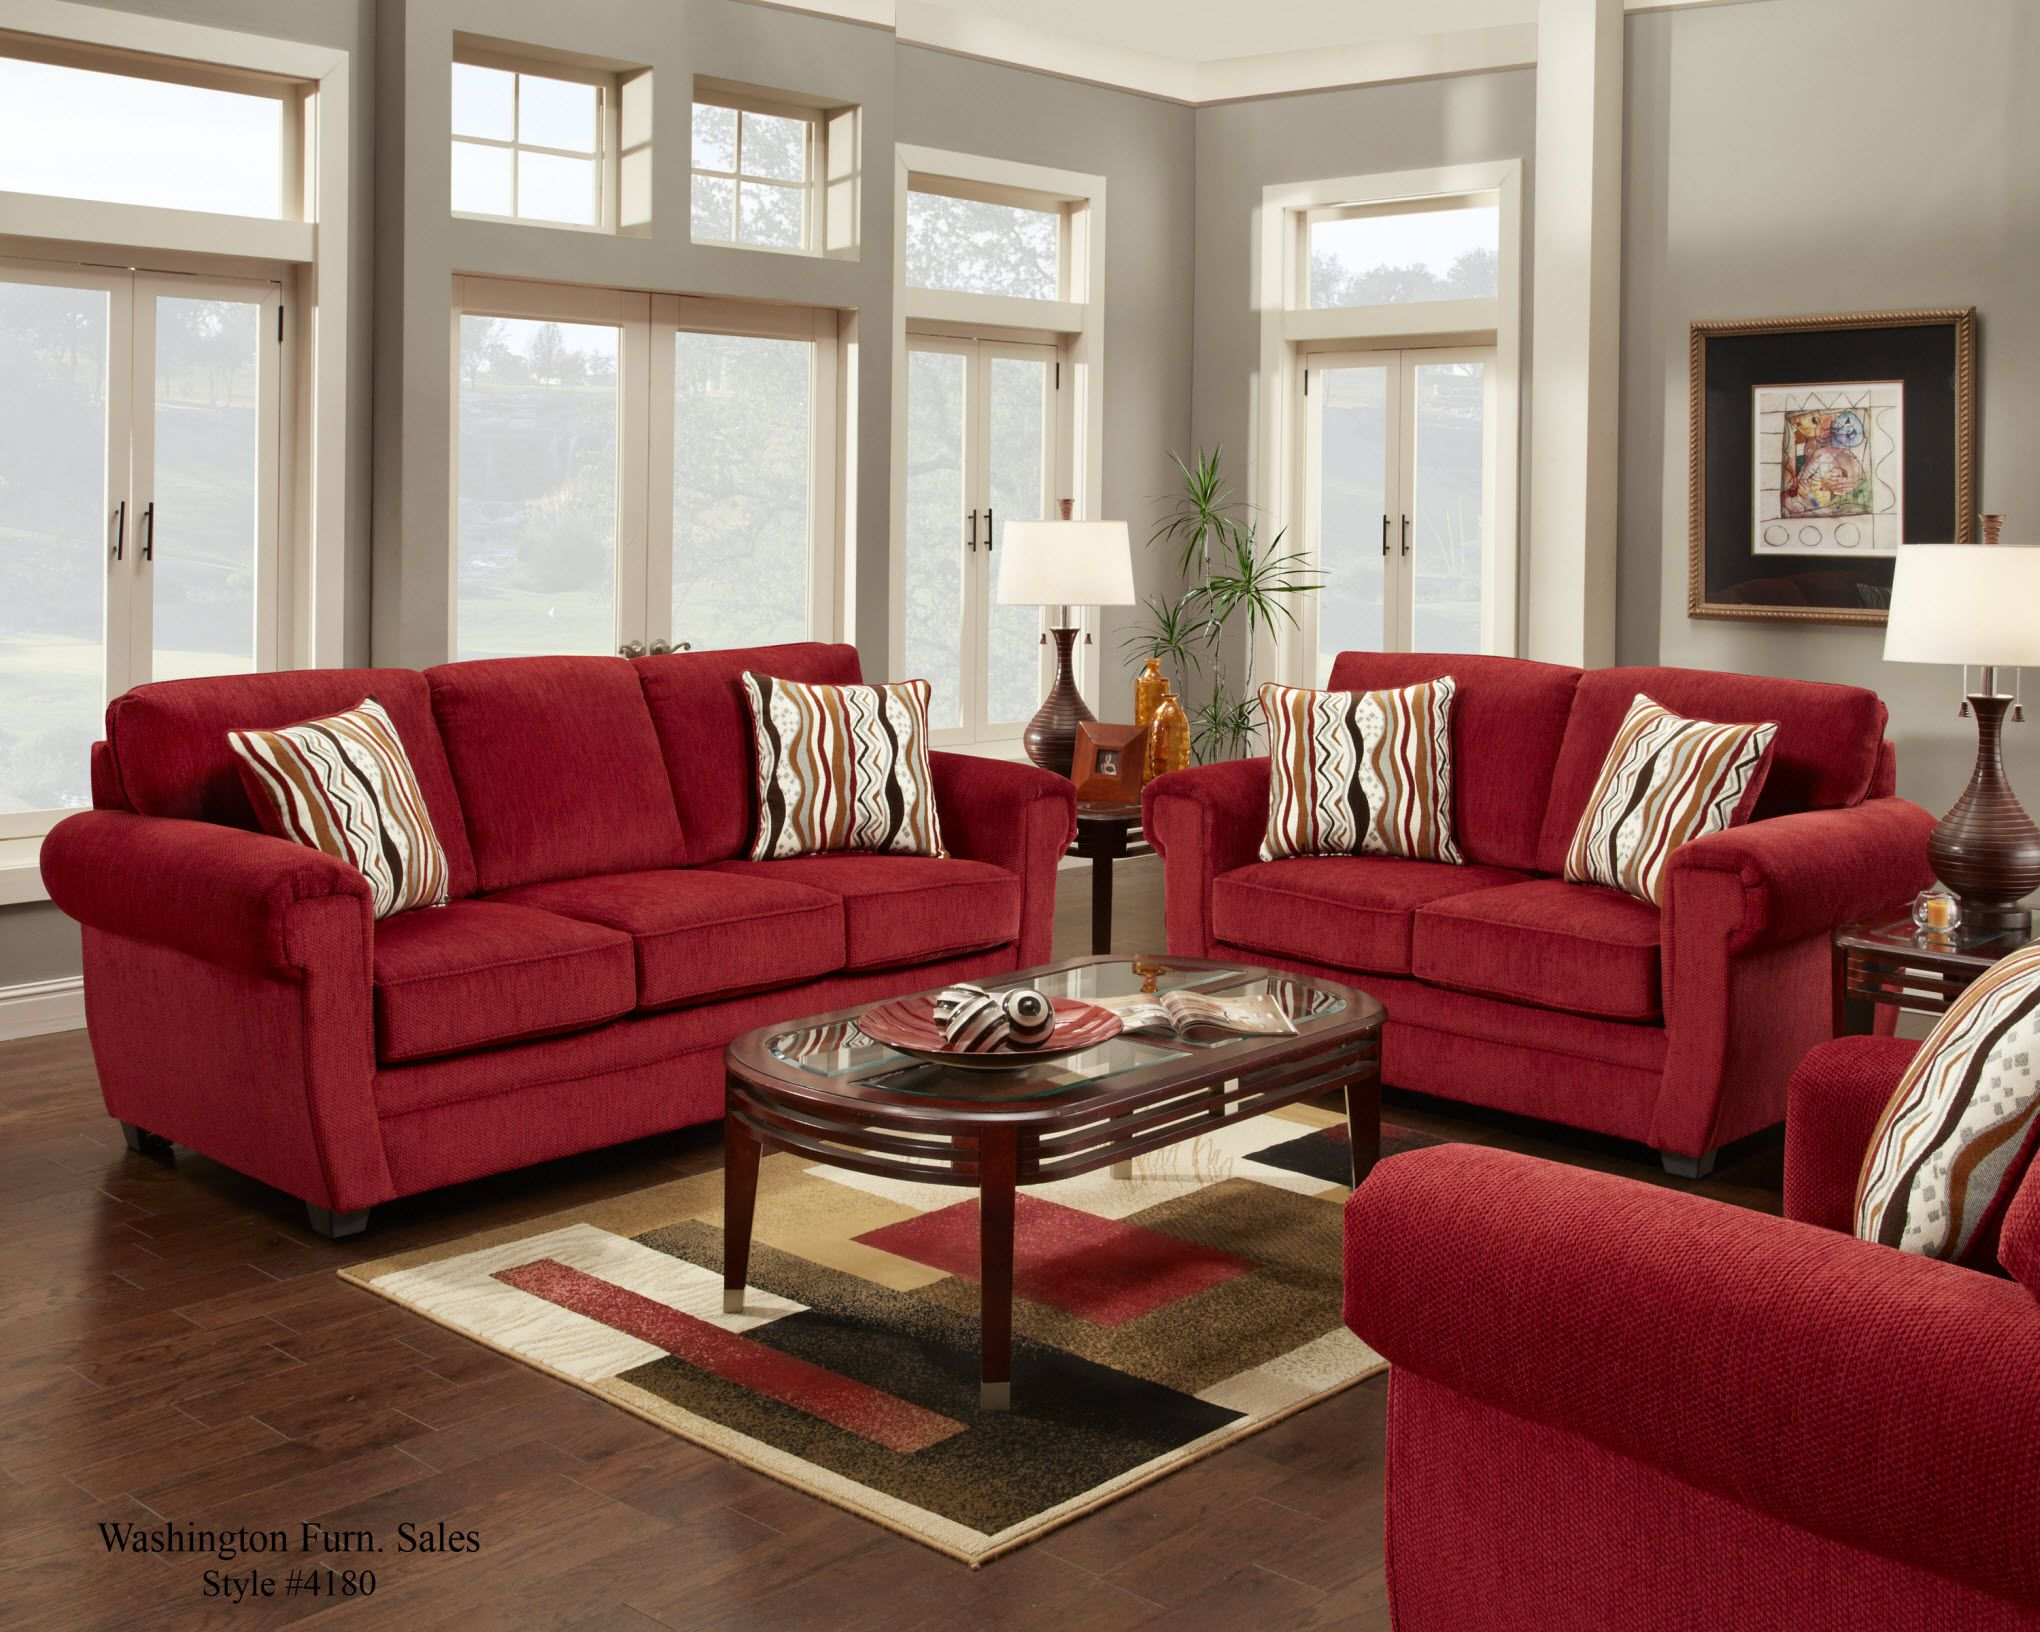 4180 washington samson red sofa and loveseat www for Living room ideas with 3 sofas